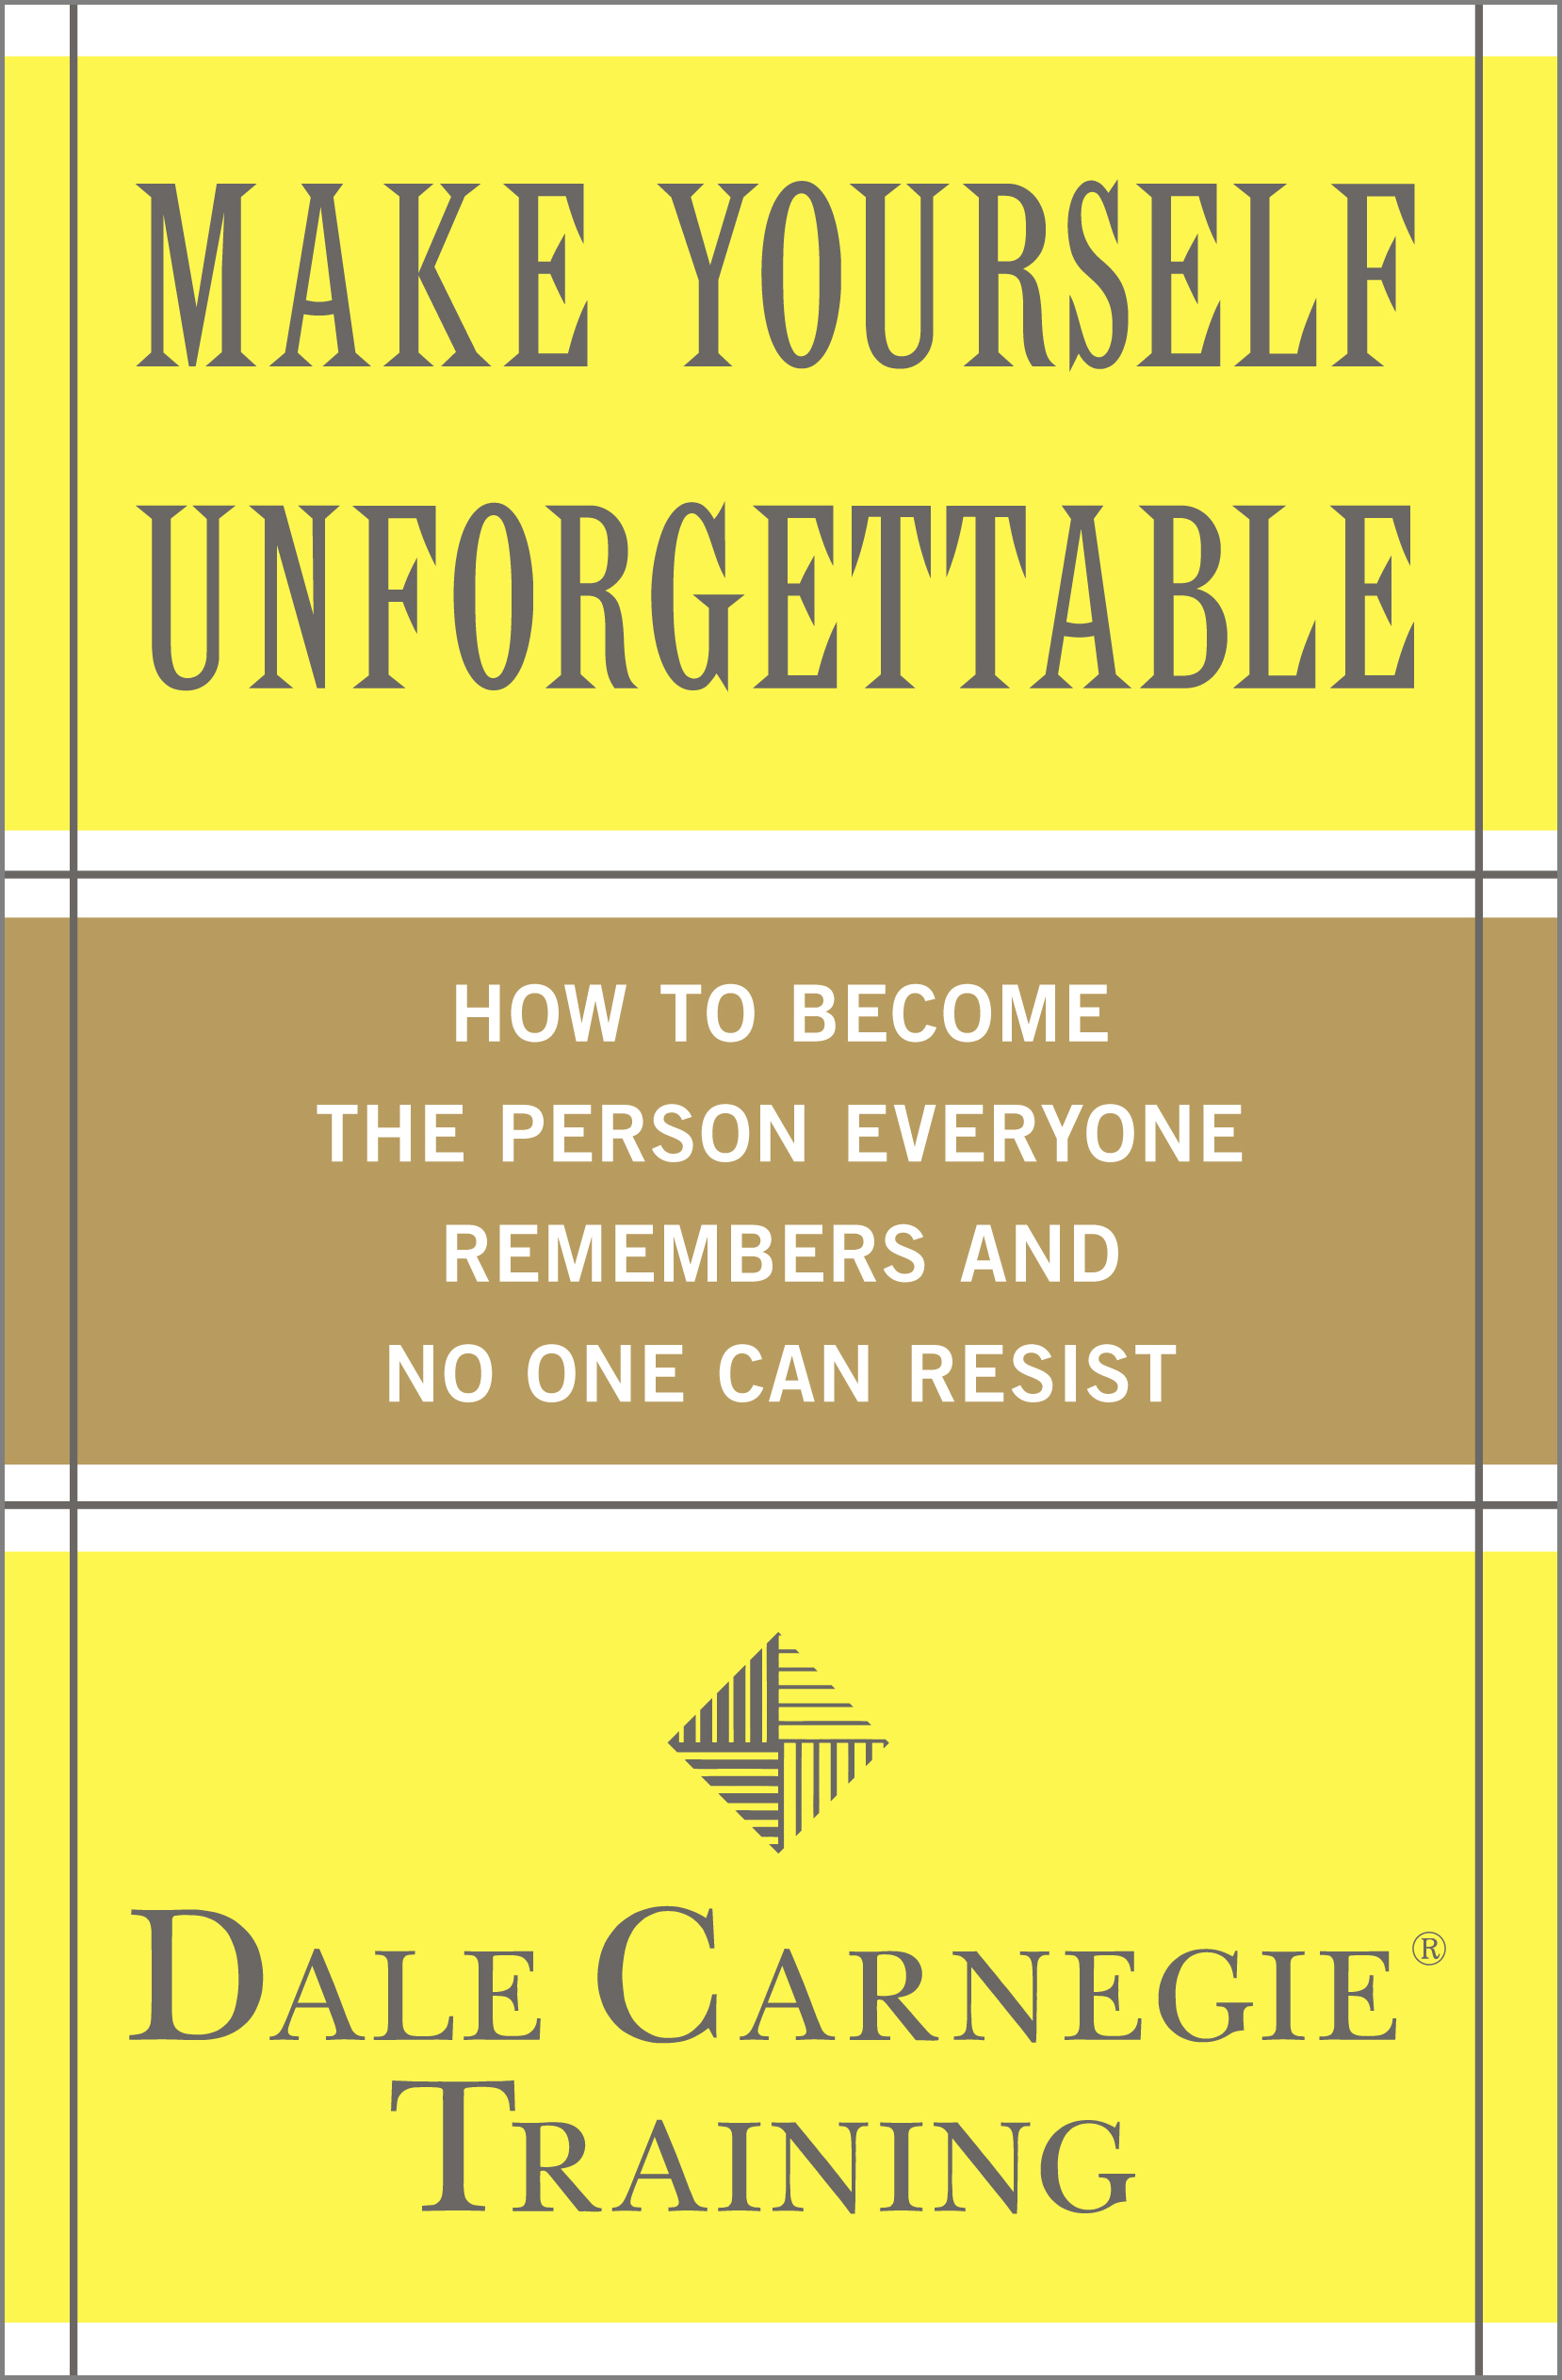 Make yourself unforgettable book by dale carnegie training cvr9781439188224 9781439188224 hr make yourself unforgettable solutioingenieria Choice Image